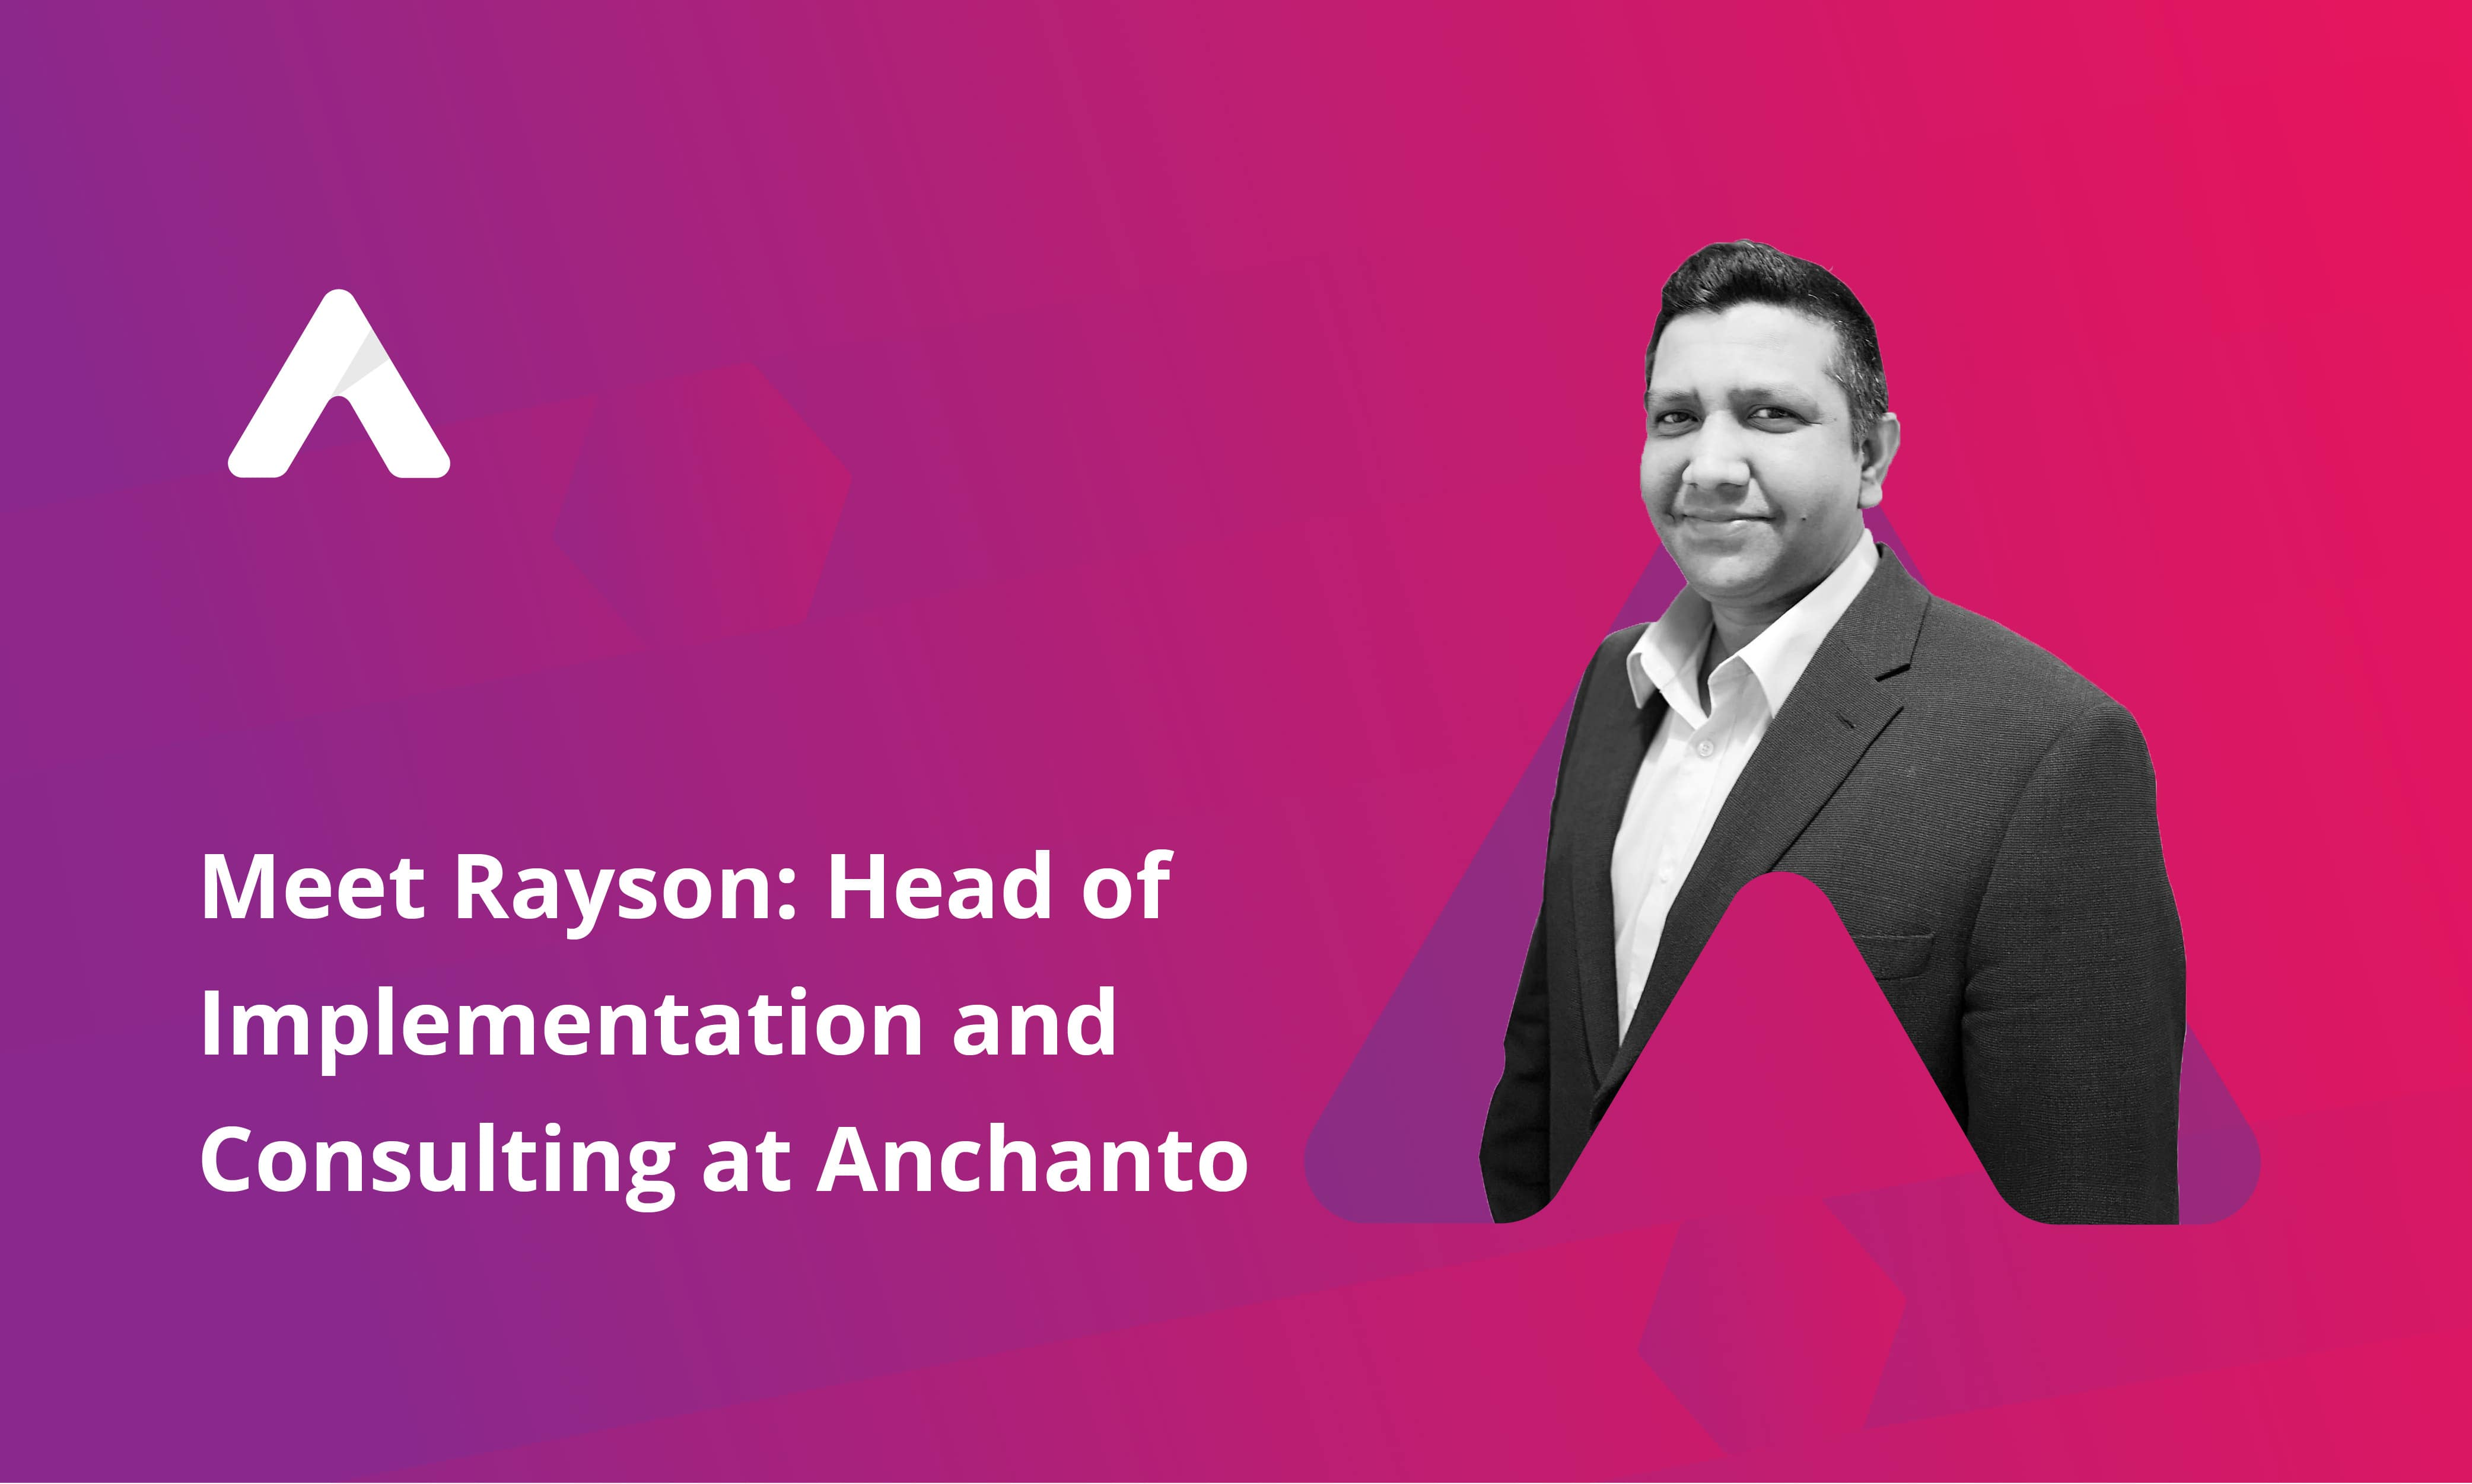 Head of Implementation and consulting at Anchanto